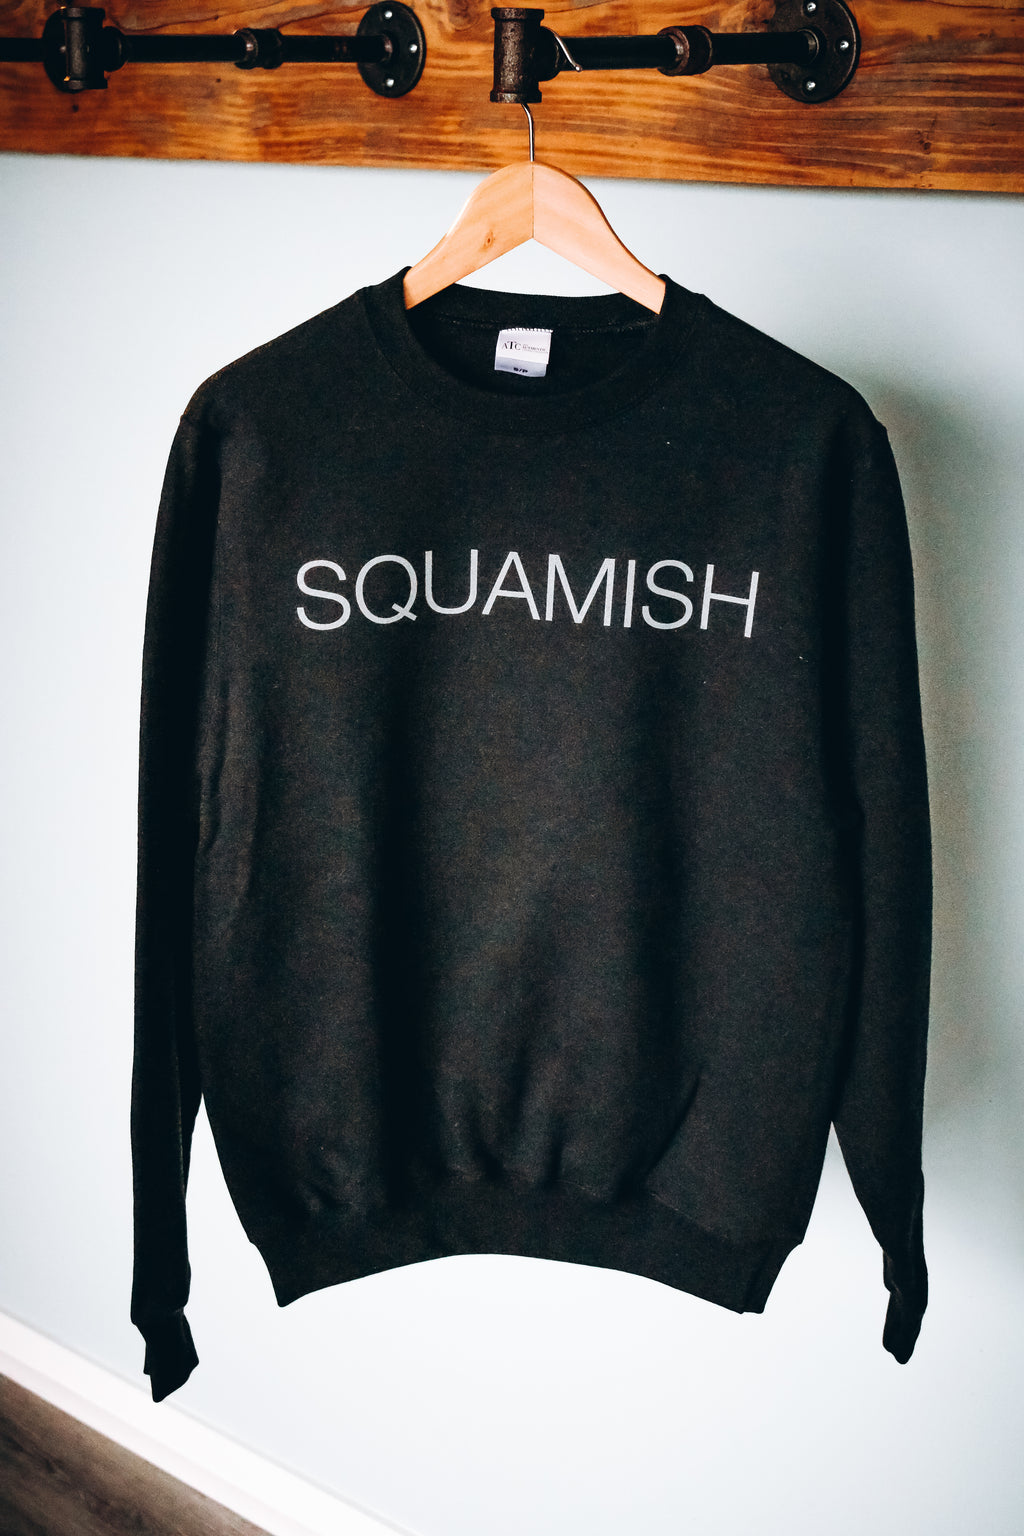 Squamish Crew Neck Sweatshirt - Black